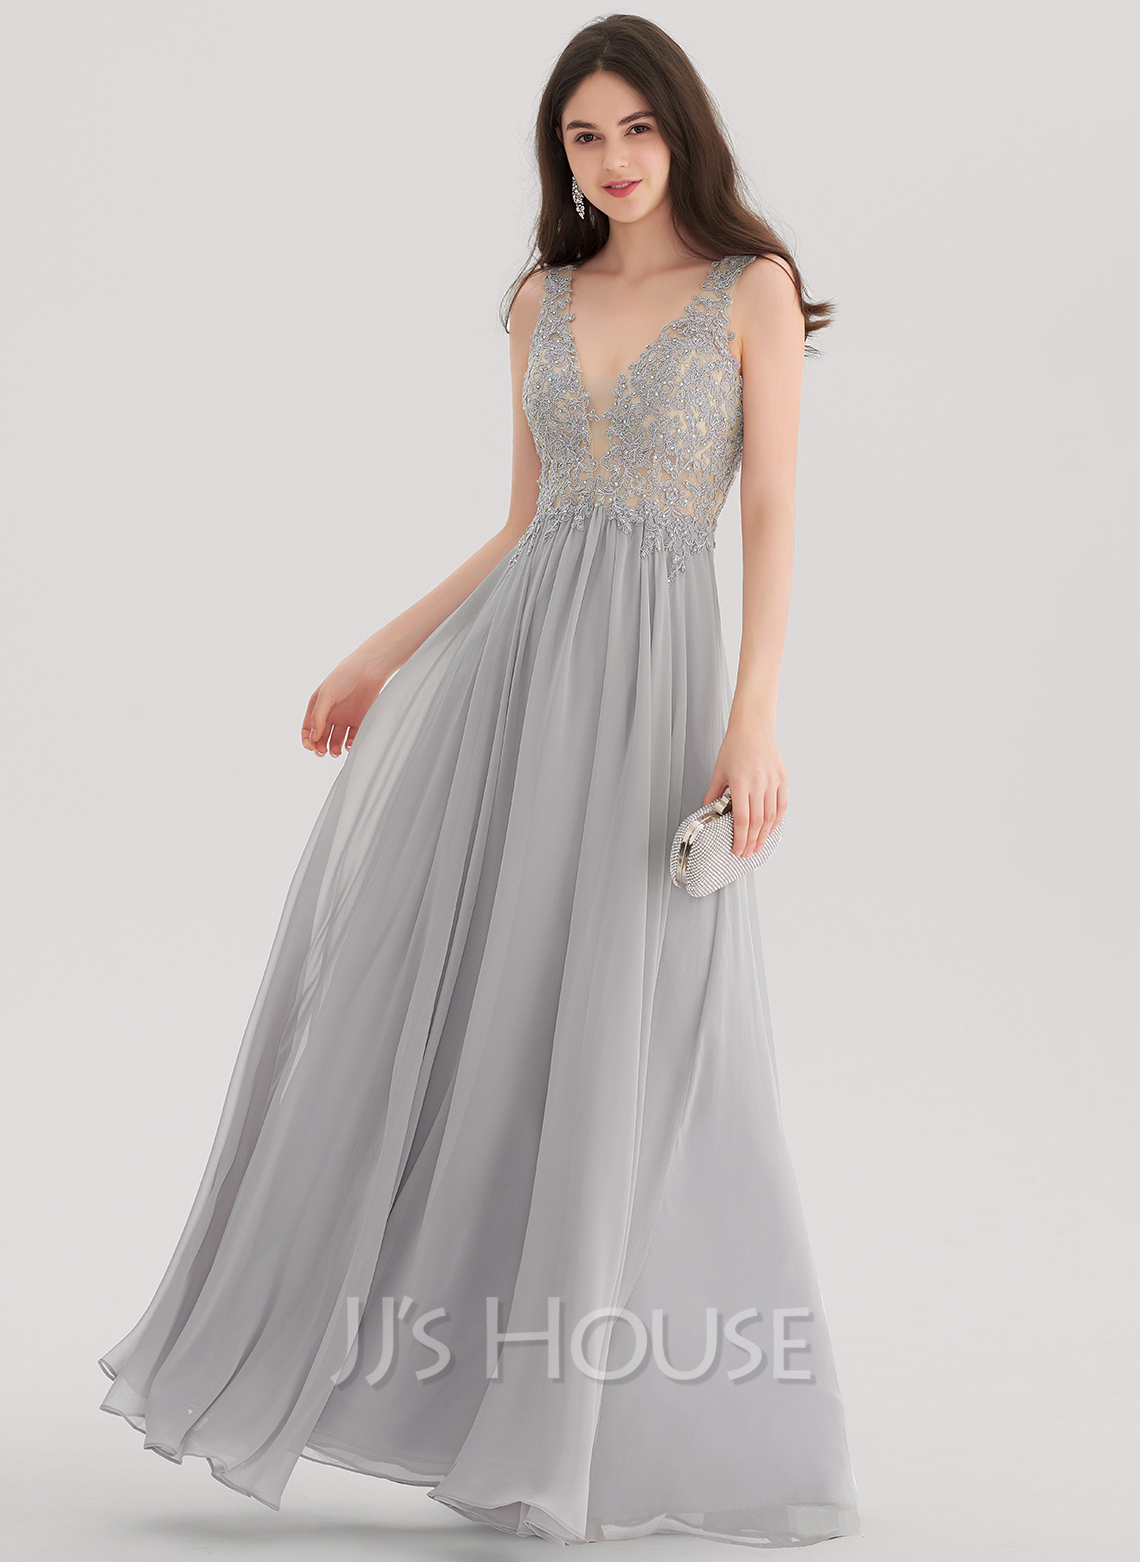 e5c0c2682bf14 A-Line/Princess V-neck Floor-Length Chiffon Prom Dresses With Beading.  Loading zoom